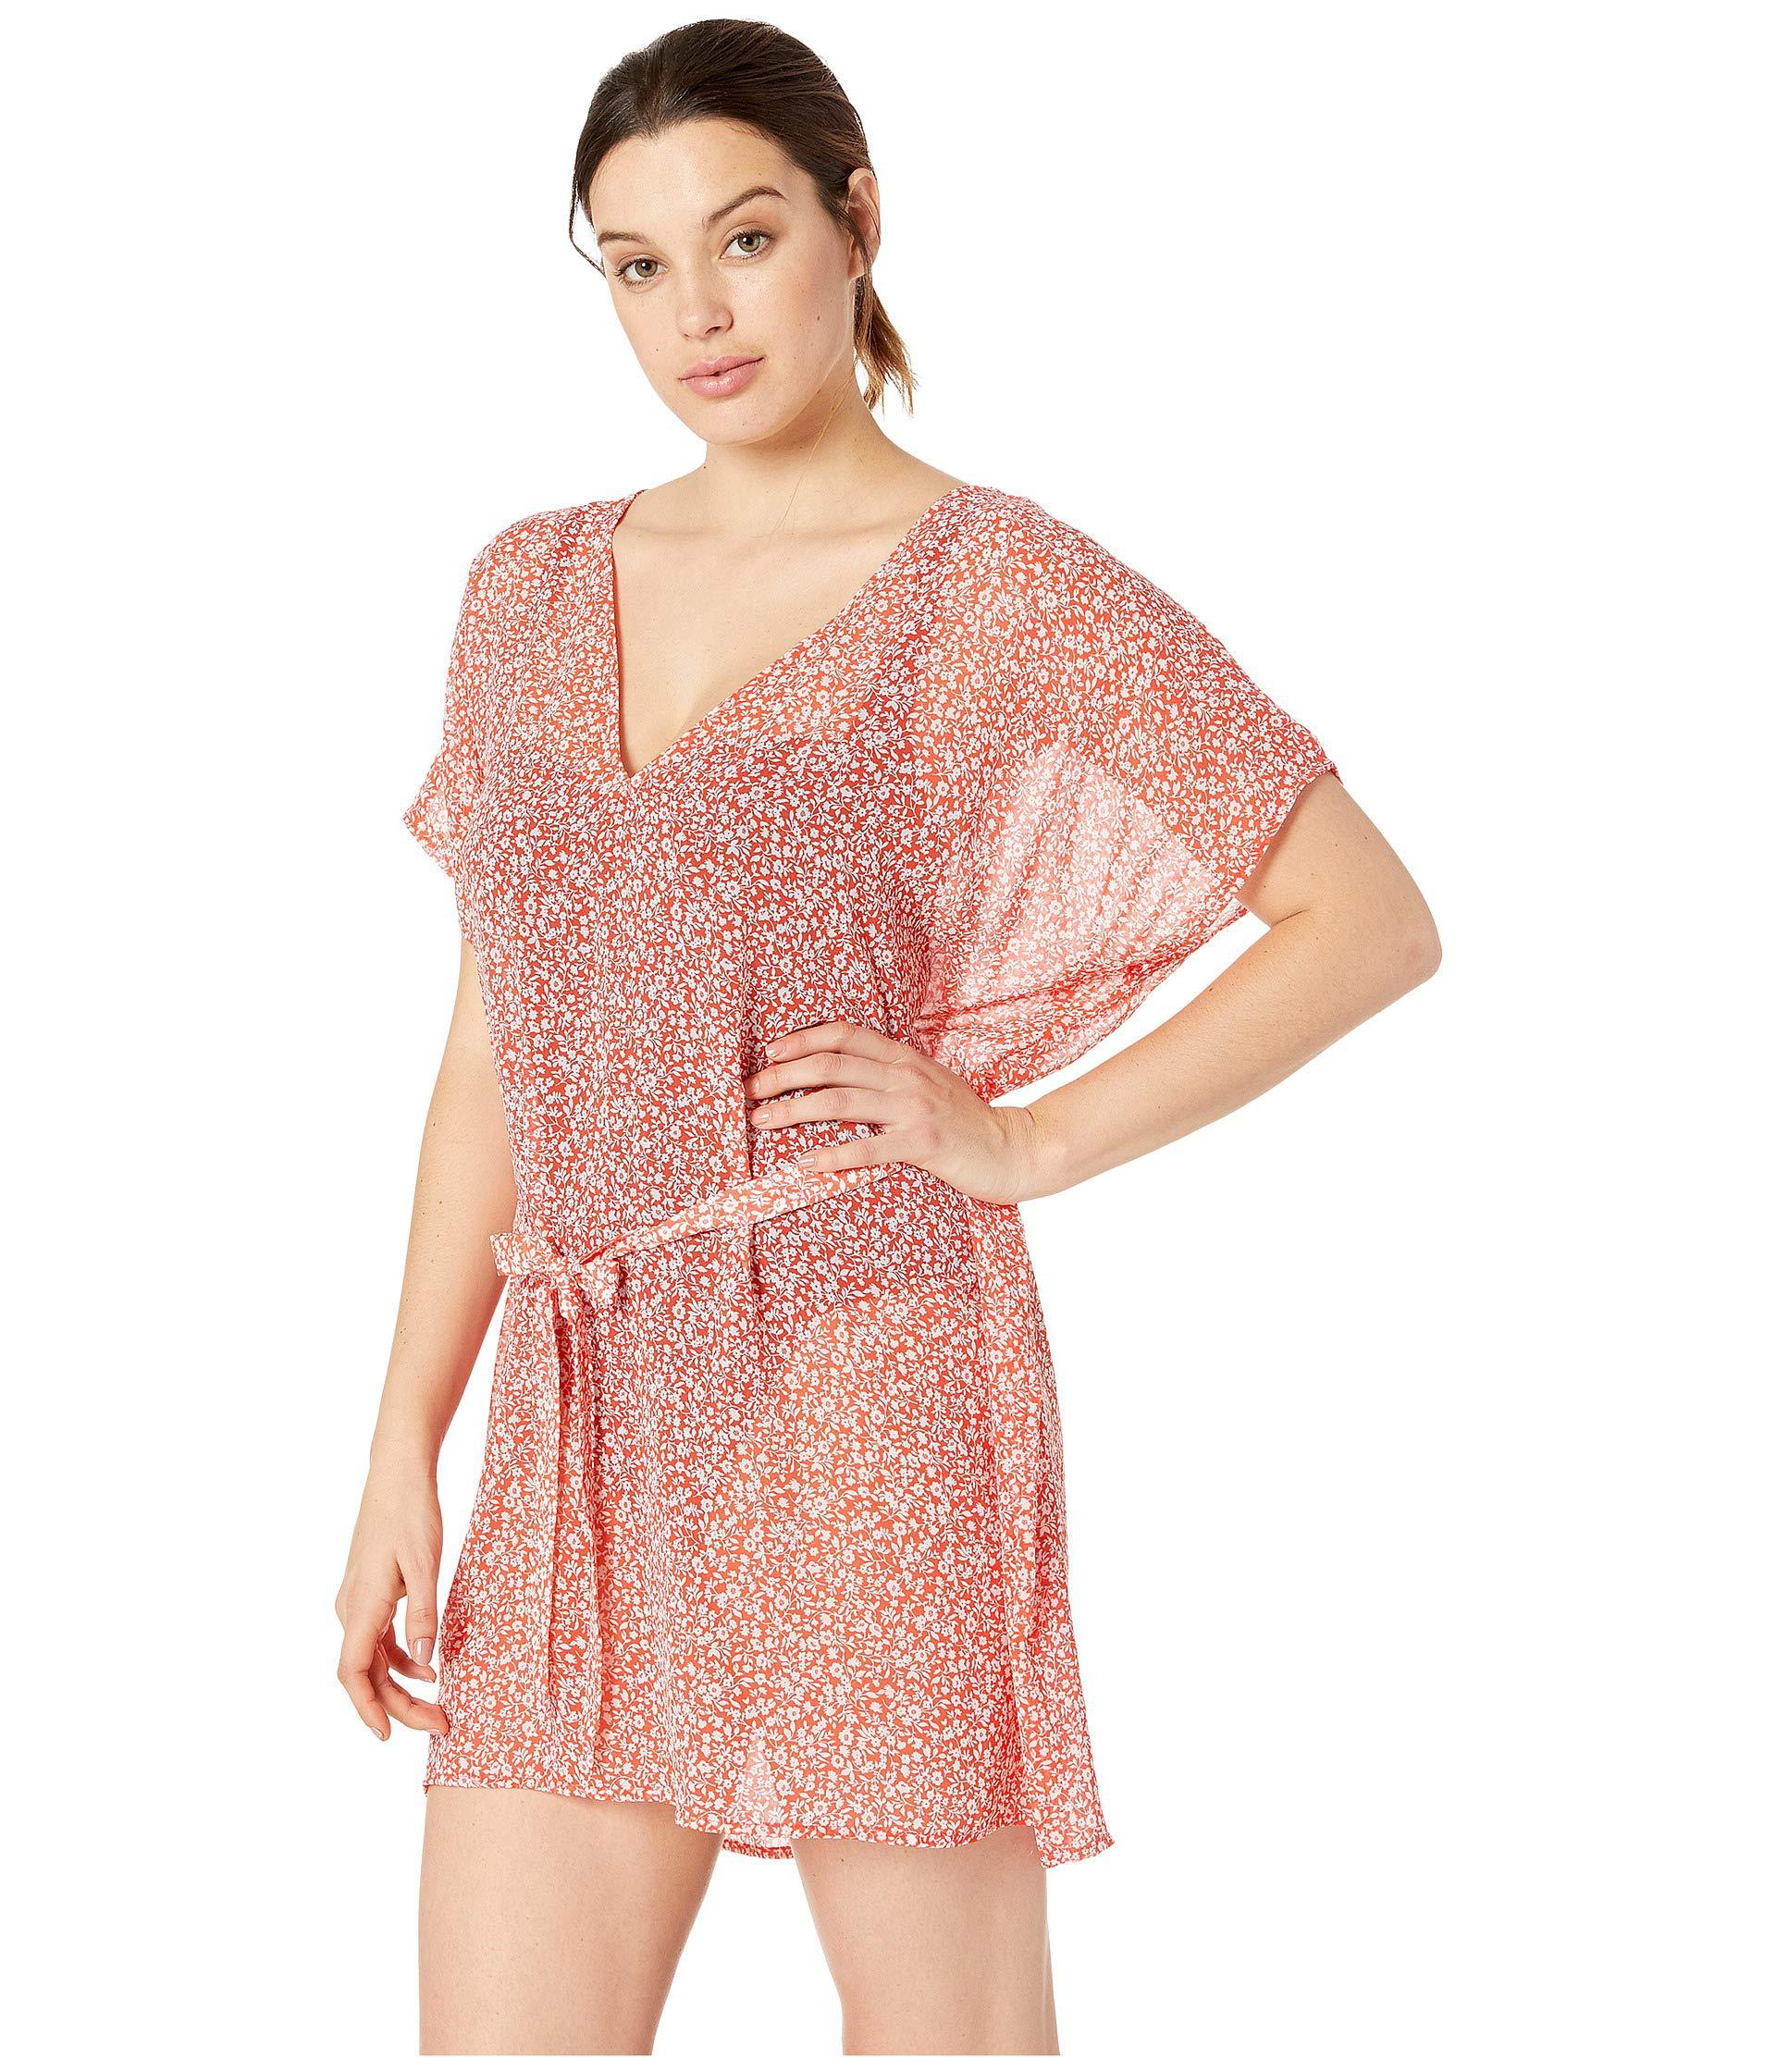 8c0db8b1dc Lyst - MICHAEL Michael Kors Shadow Floral Belted V-neck Caftan Cover-up  (black) Women s Swimwear in Pink